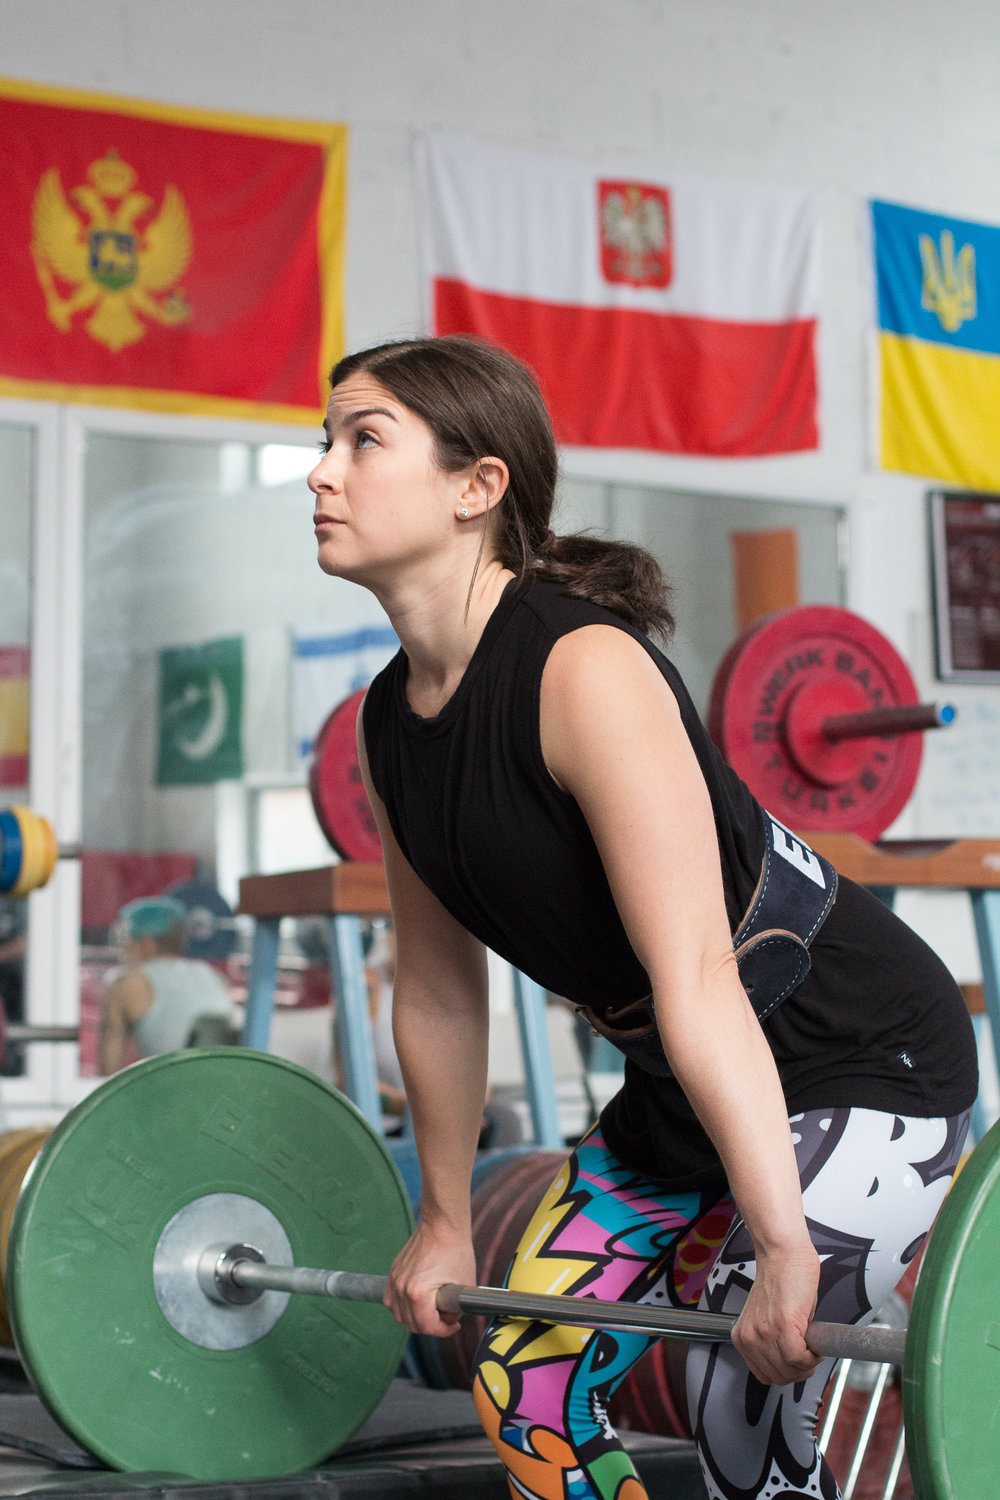 lauren-weightlifters-olympic-weightlifting-featured-everyday-lifters (17 of 31).jpg